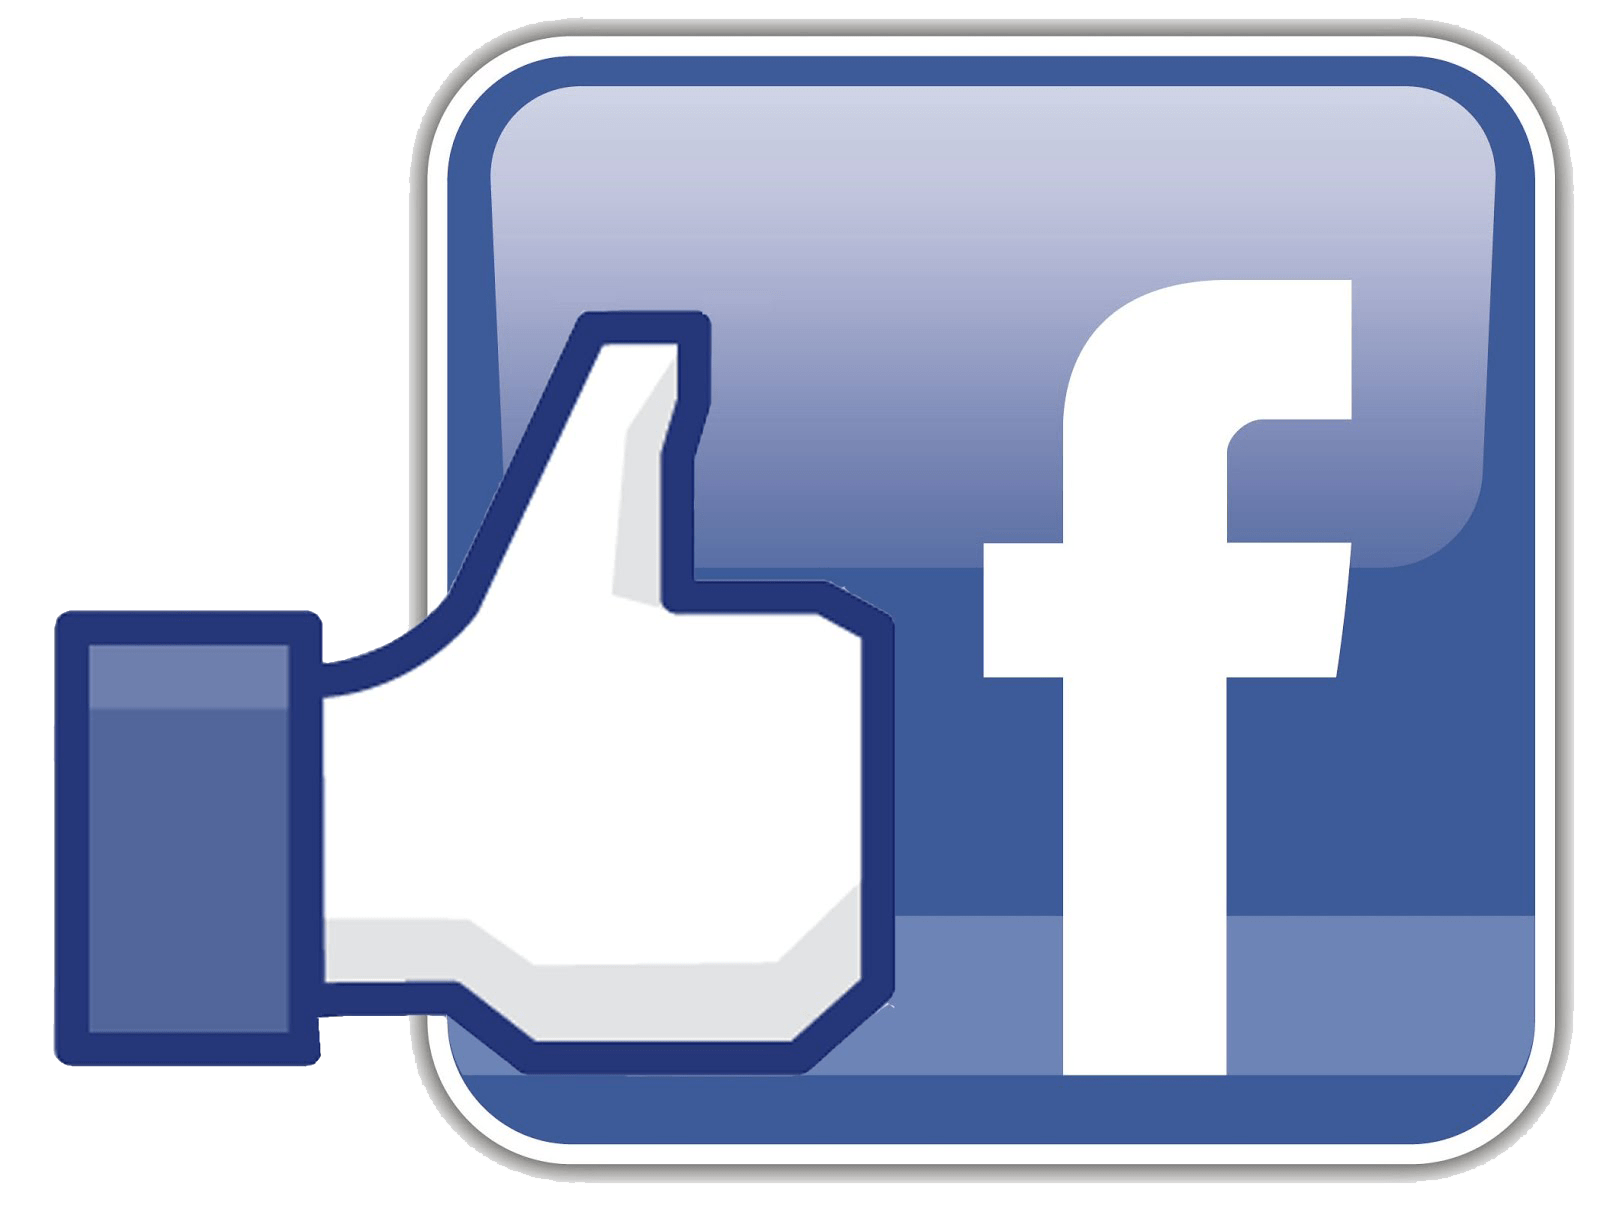 Facebook Like Button Transparent Background